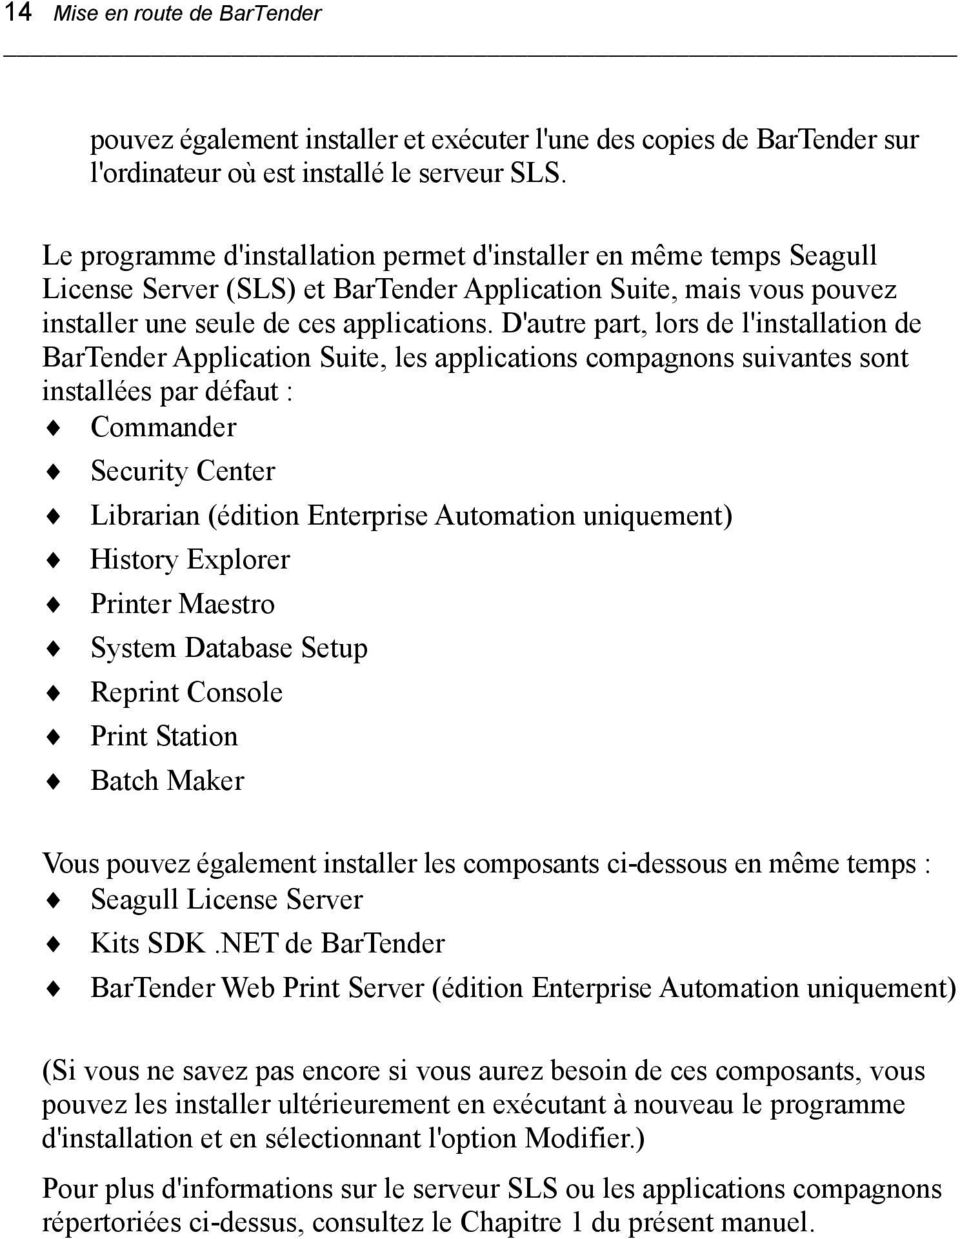 D'autre part, lors de l'installation de BarTender Application Suite, les applications compagnons suivantes sont installées par défaut : Commander Security Center Librarian (édition Enterprise